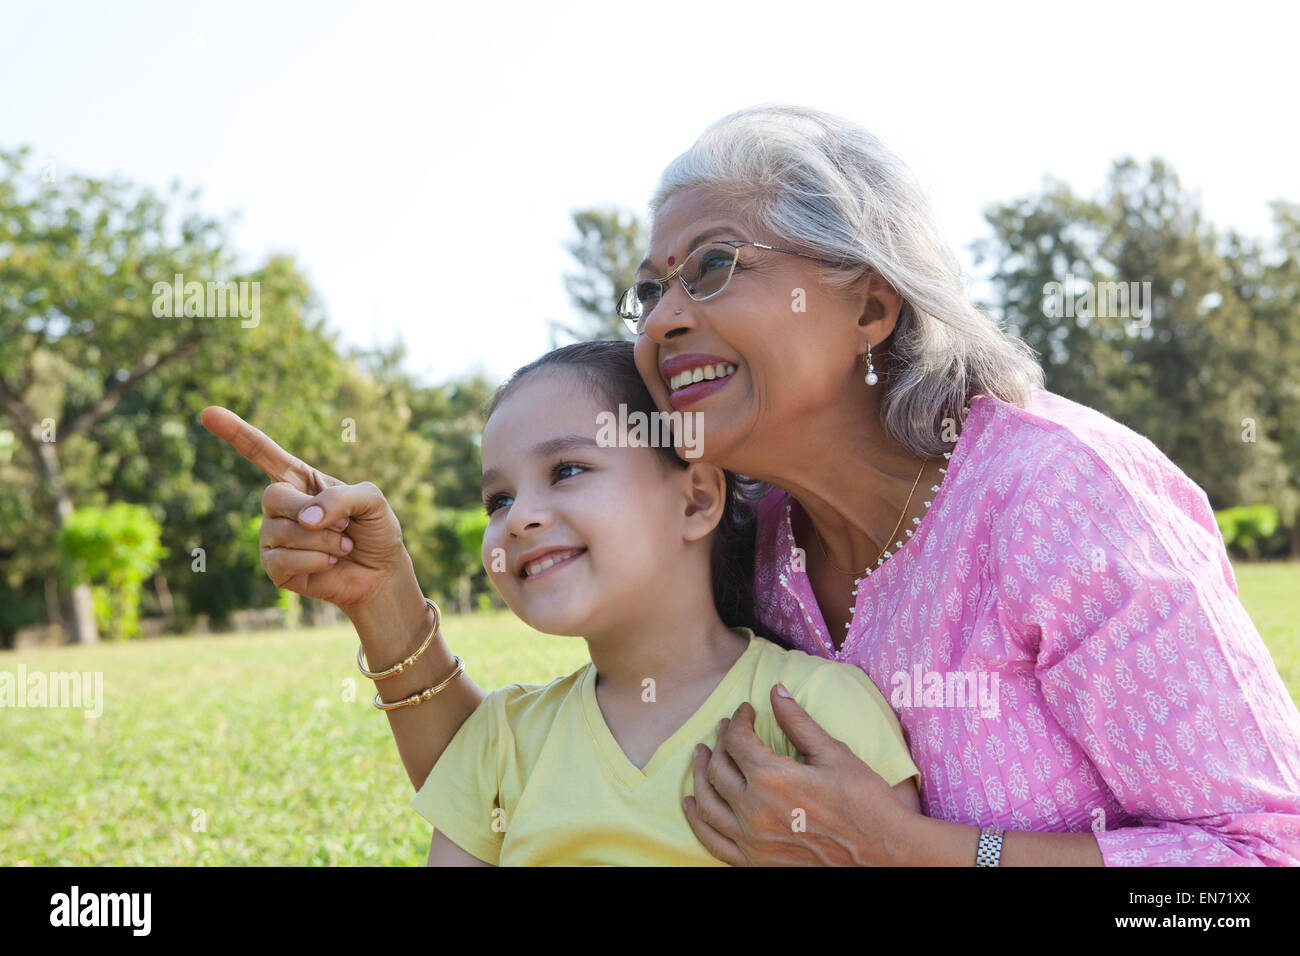 Grandmother pointing something out to granddaughter - Stock Image